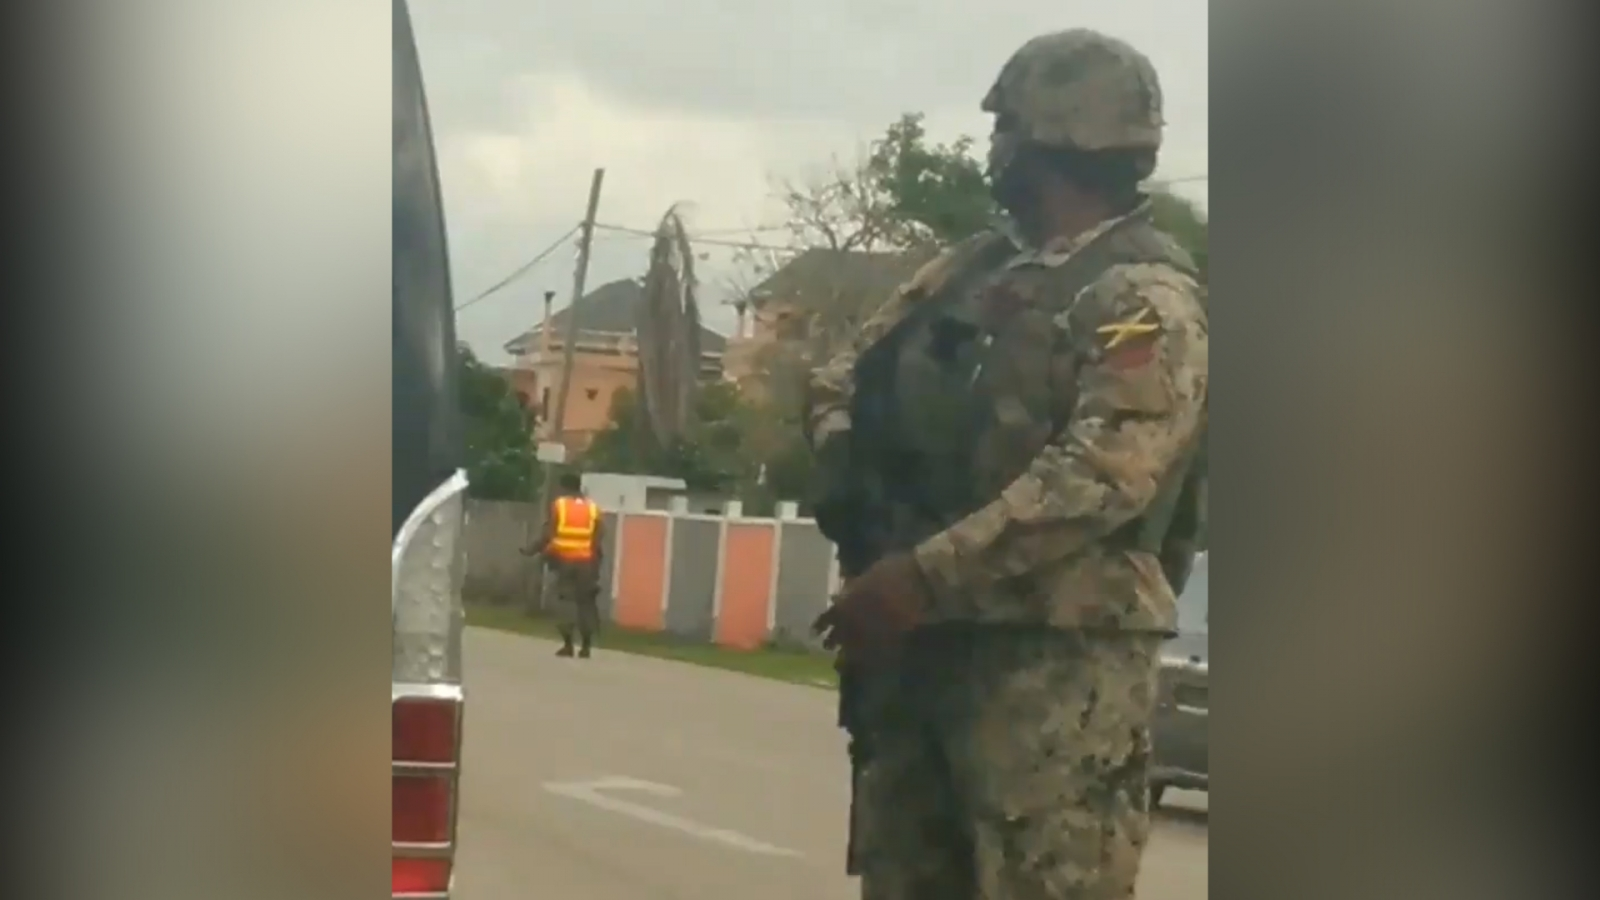 Military checkpoints set up after state of emergency declared in Jamaica's St. James Parish